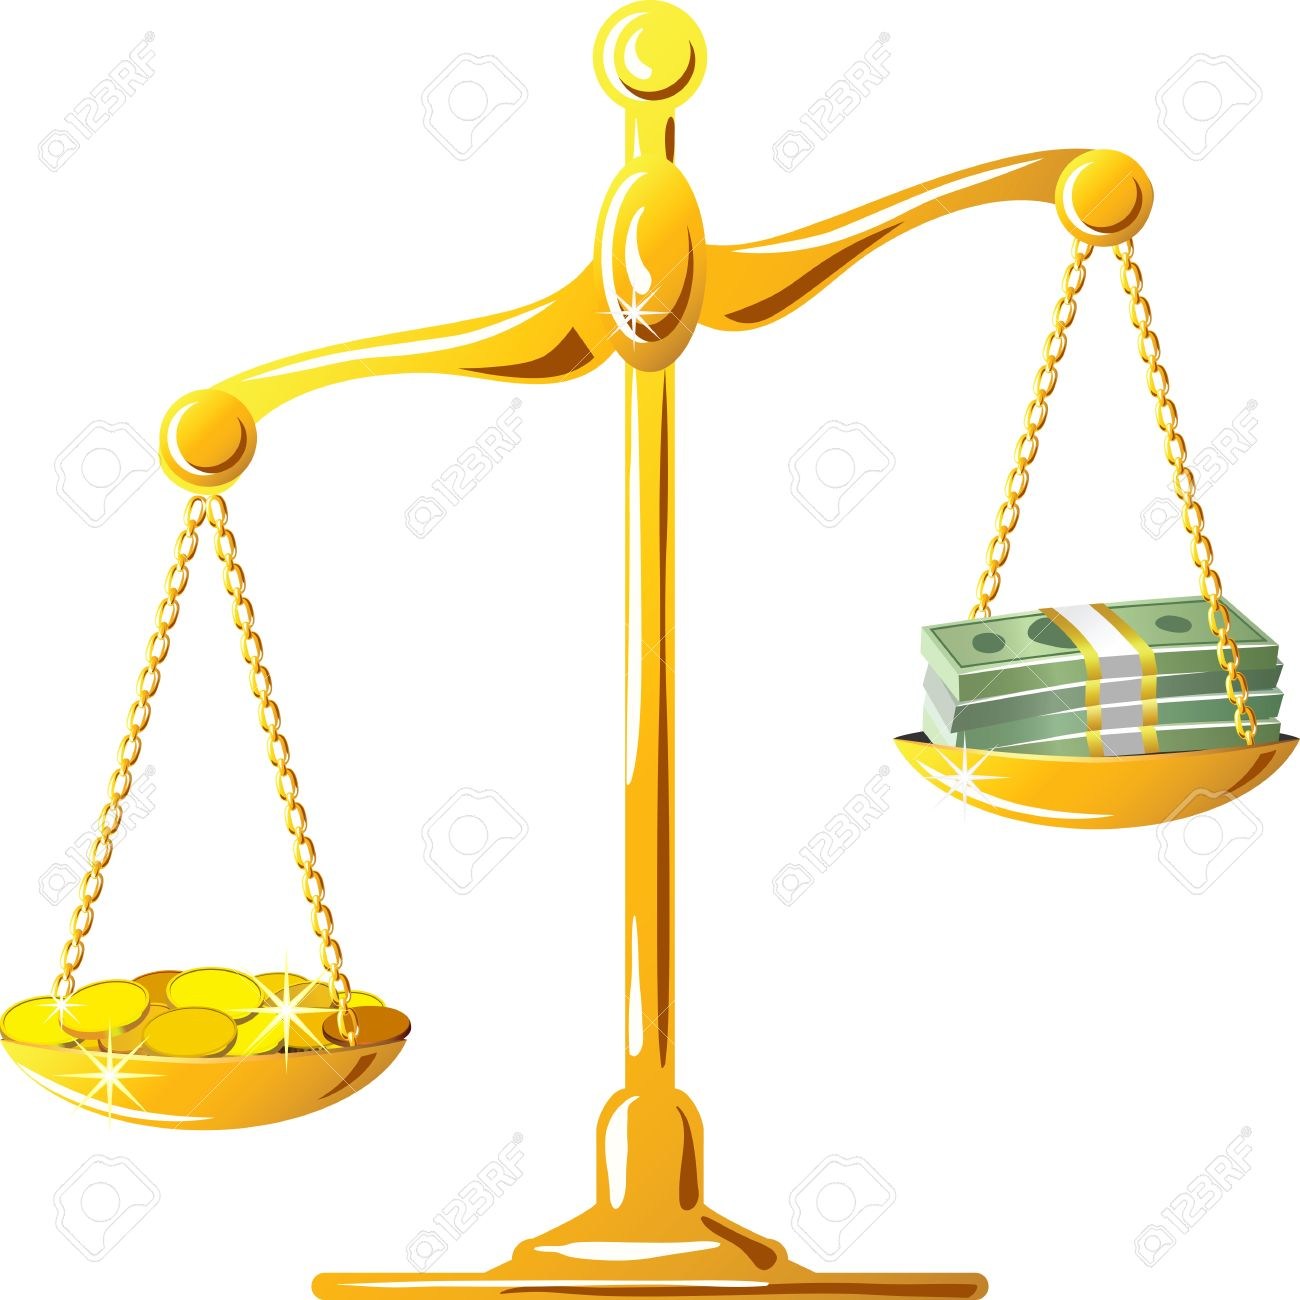 18 601 scales of justice stock illustrations cliparts and royalty rh 123rf com Fish Clip Art Balance Tennis Shoe Border Clip Art